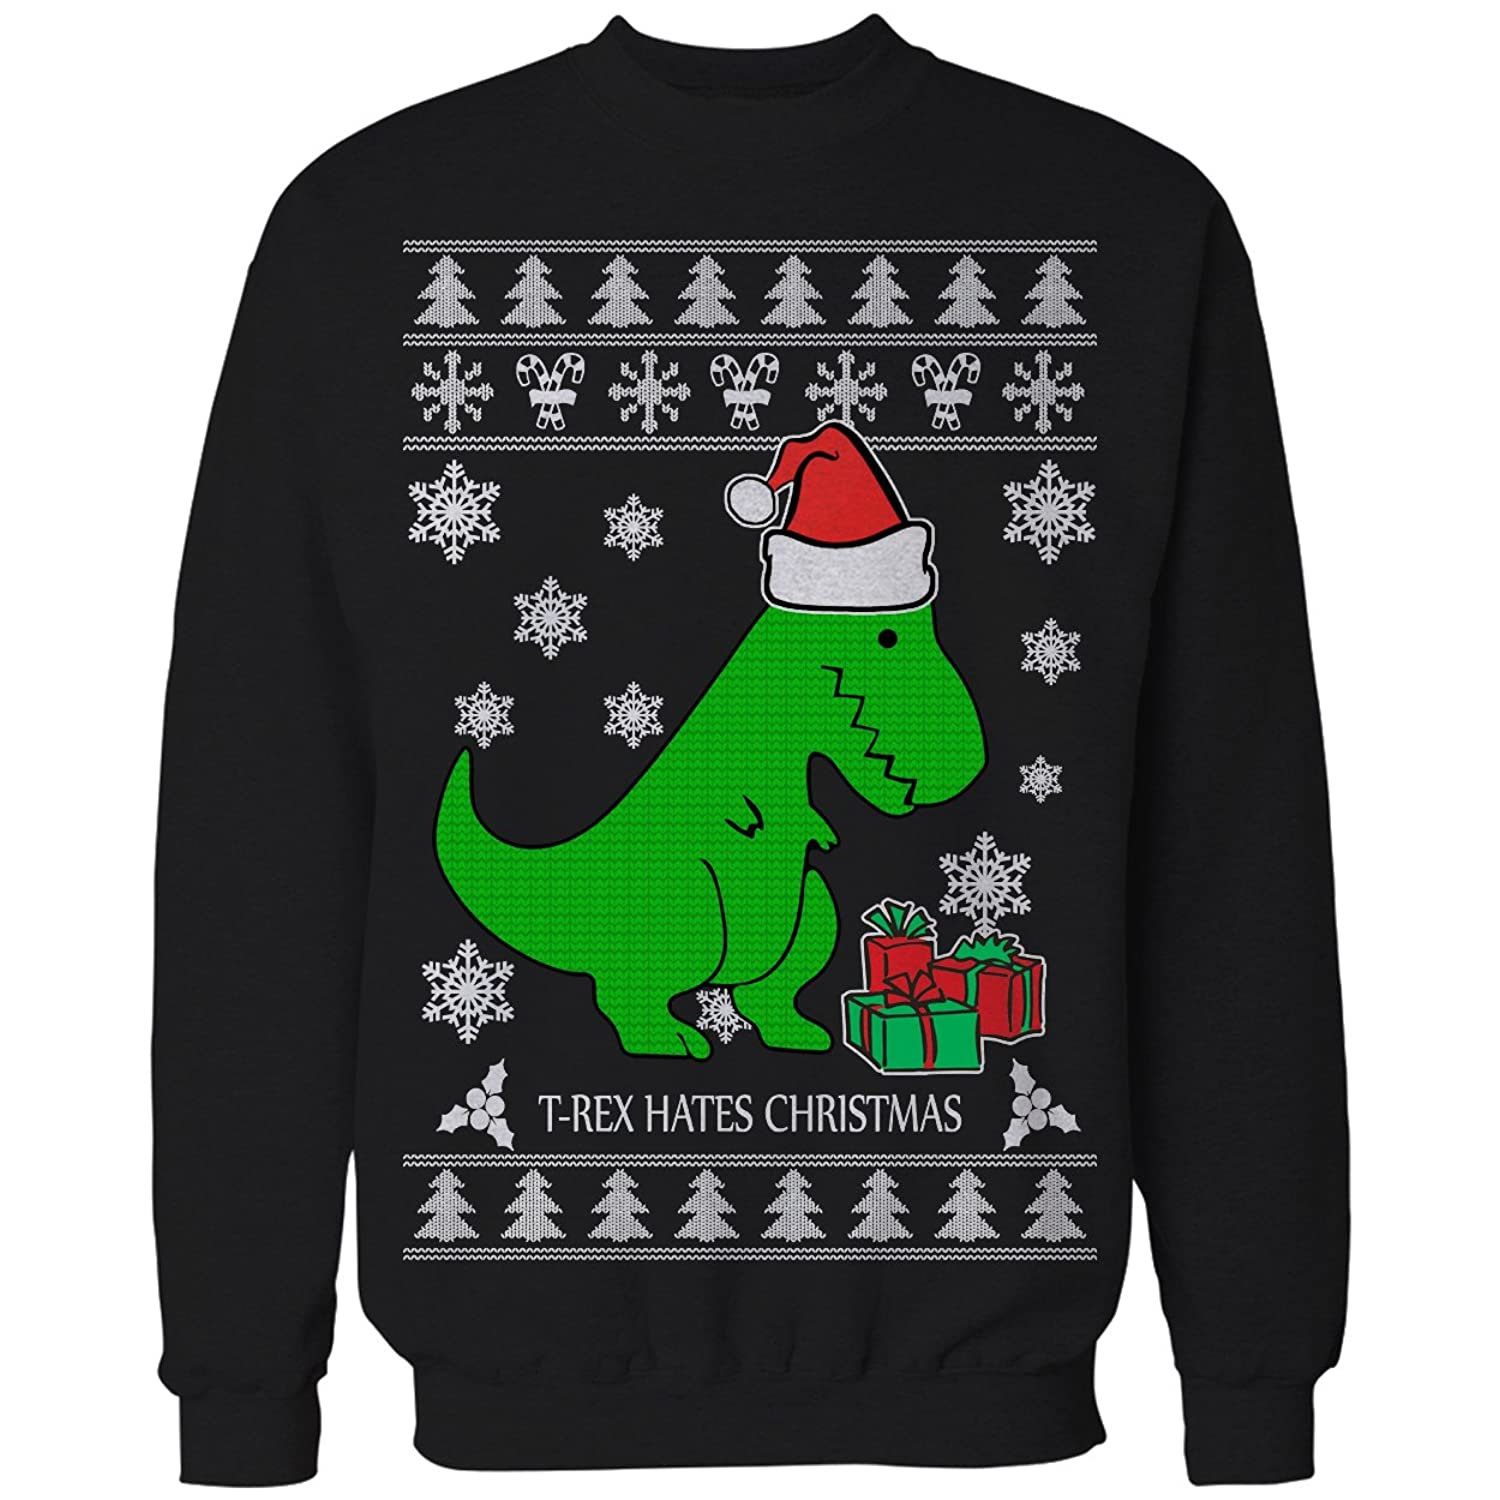 T-Rex Hates Christmas -